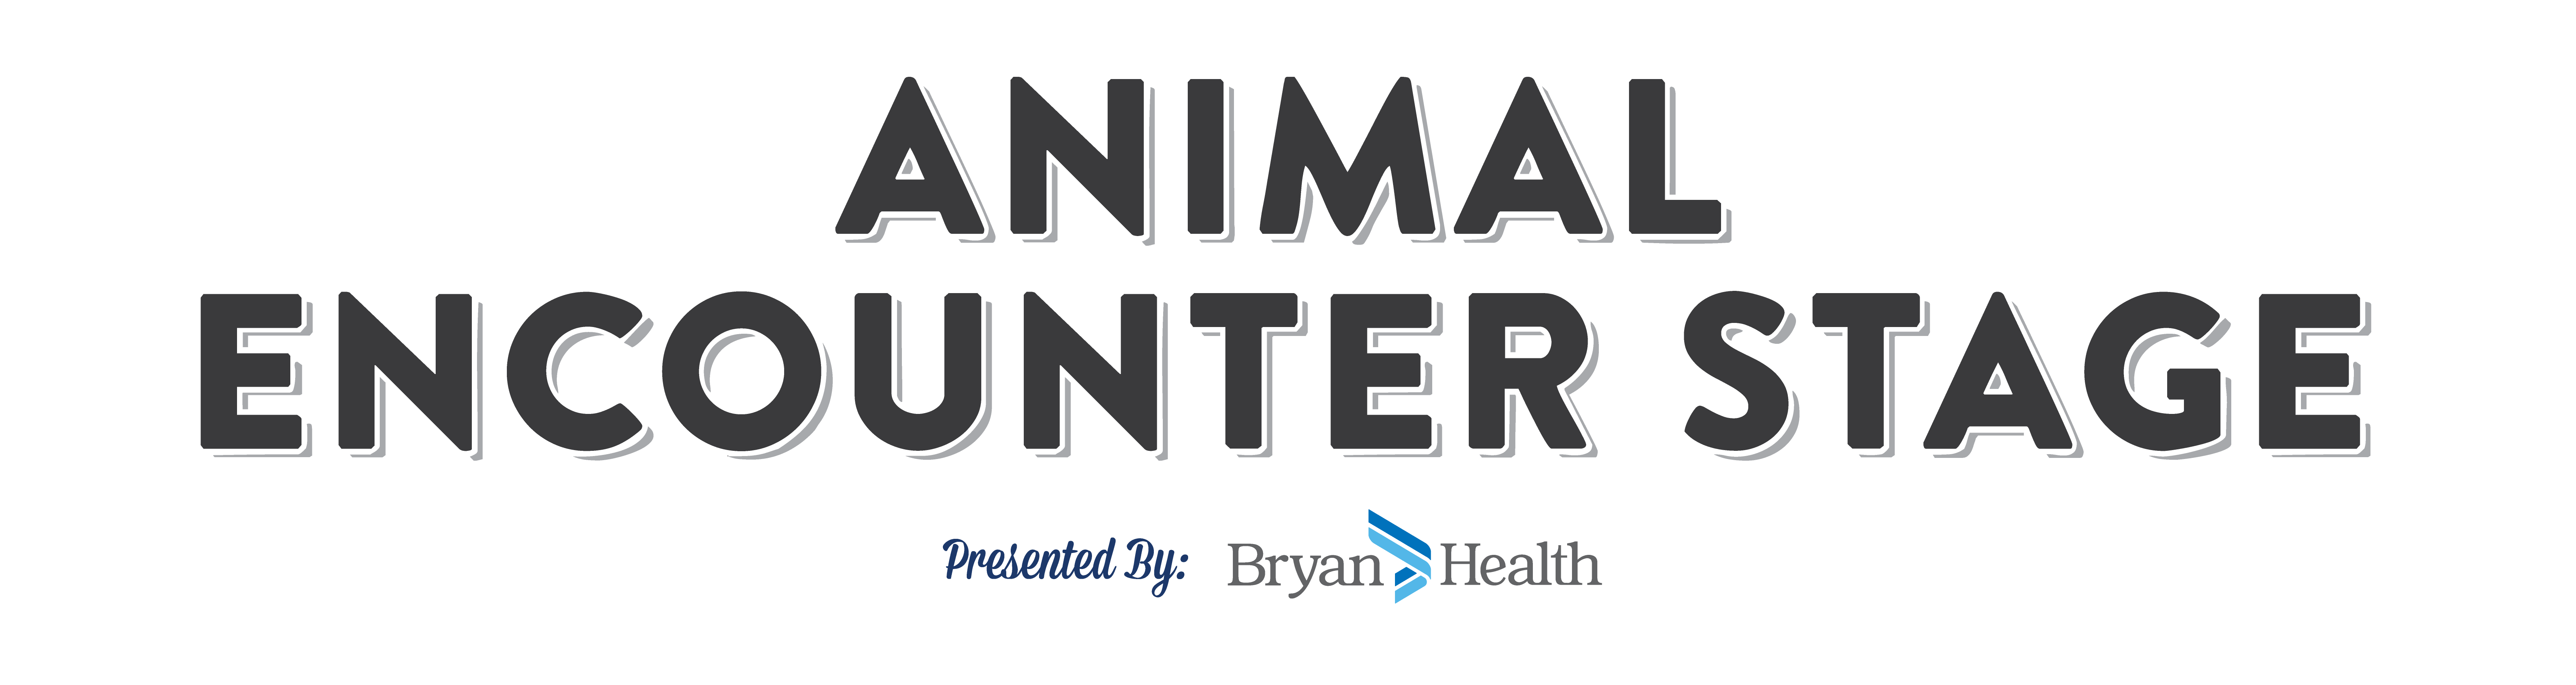 Animal Encounter Stage